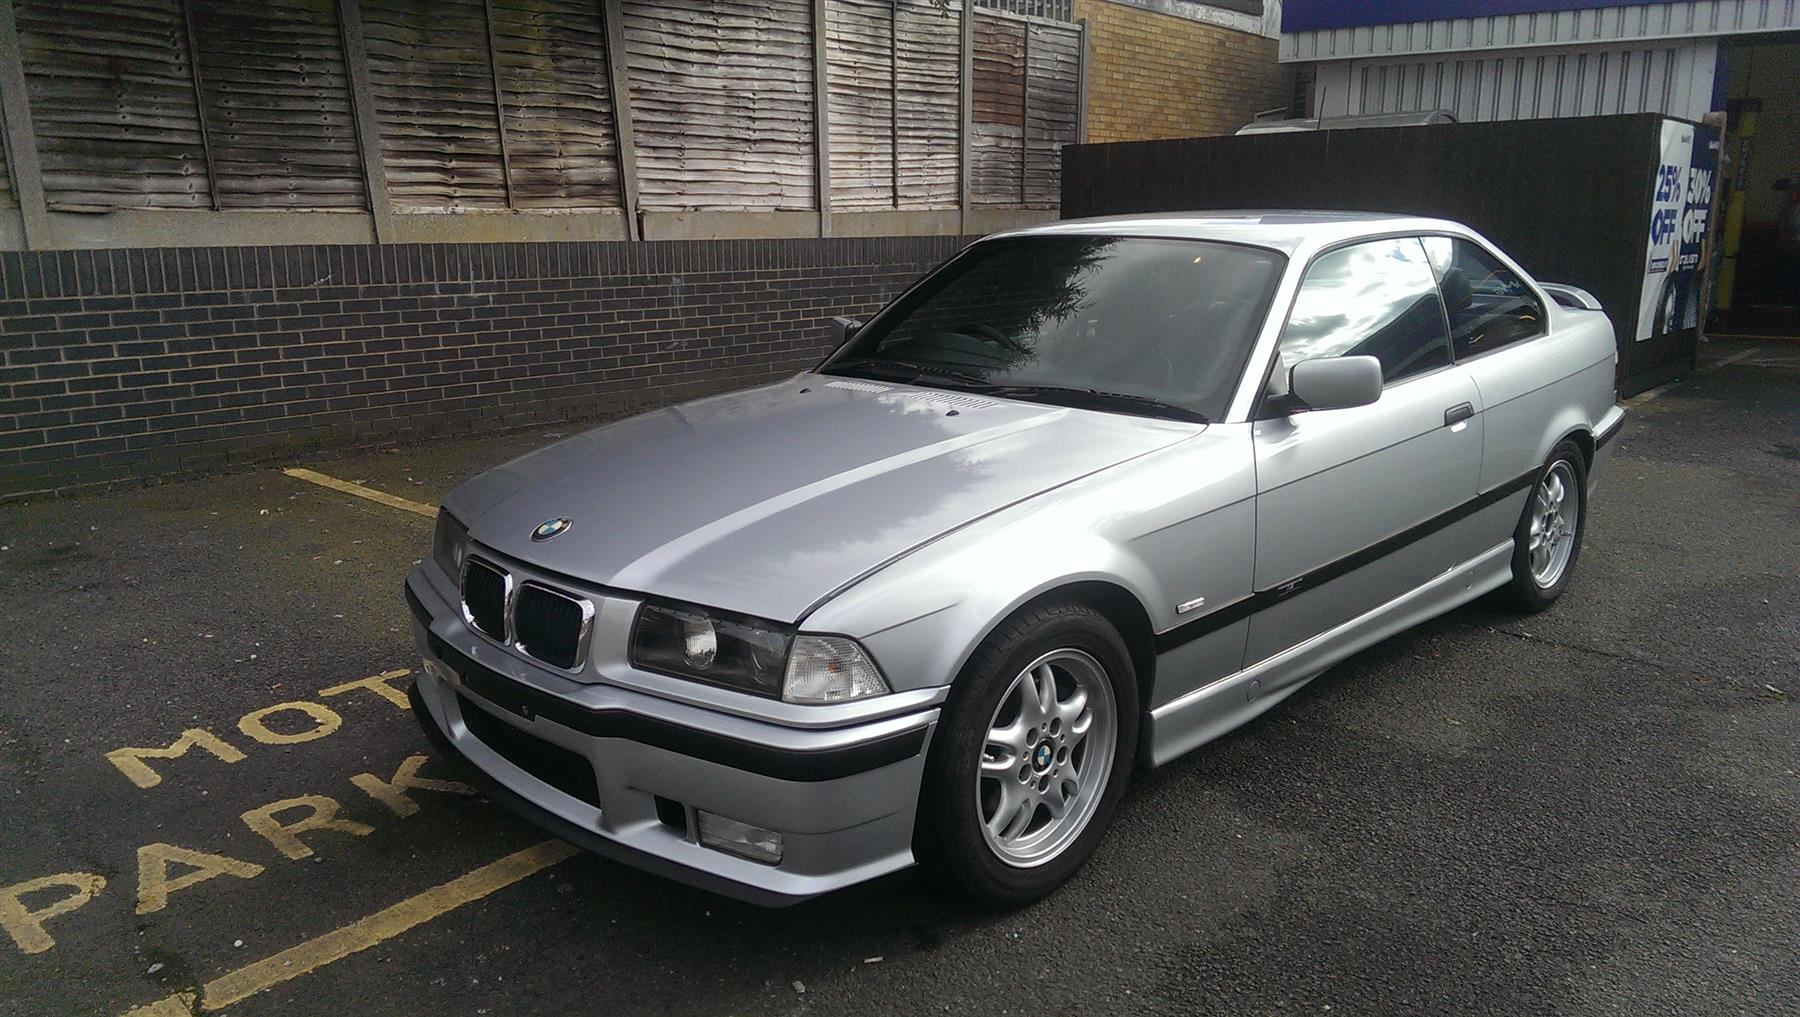 BMW 3 series 318is 1997 photo - 11